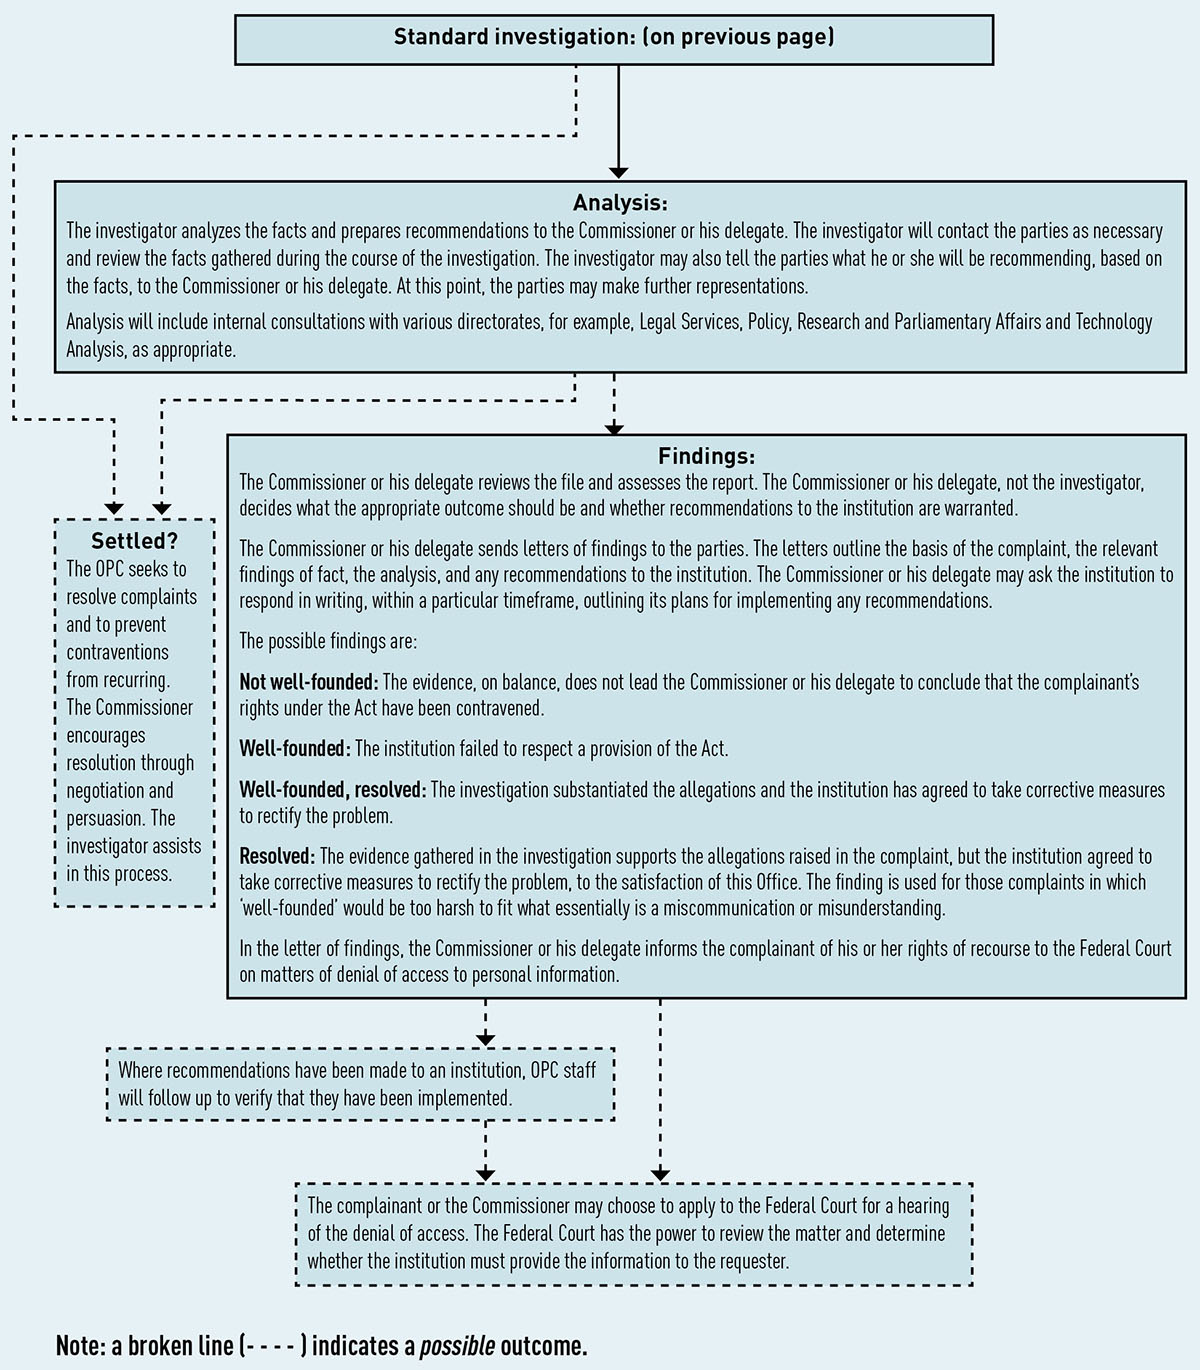 Figure 4: Privacy Act investigation process